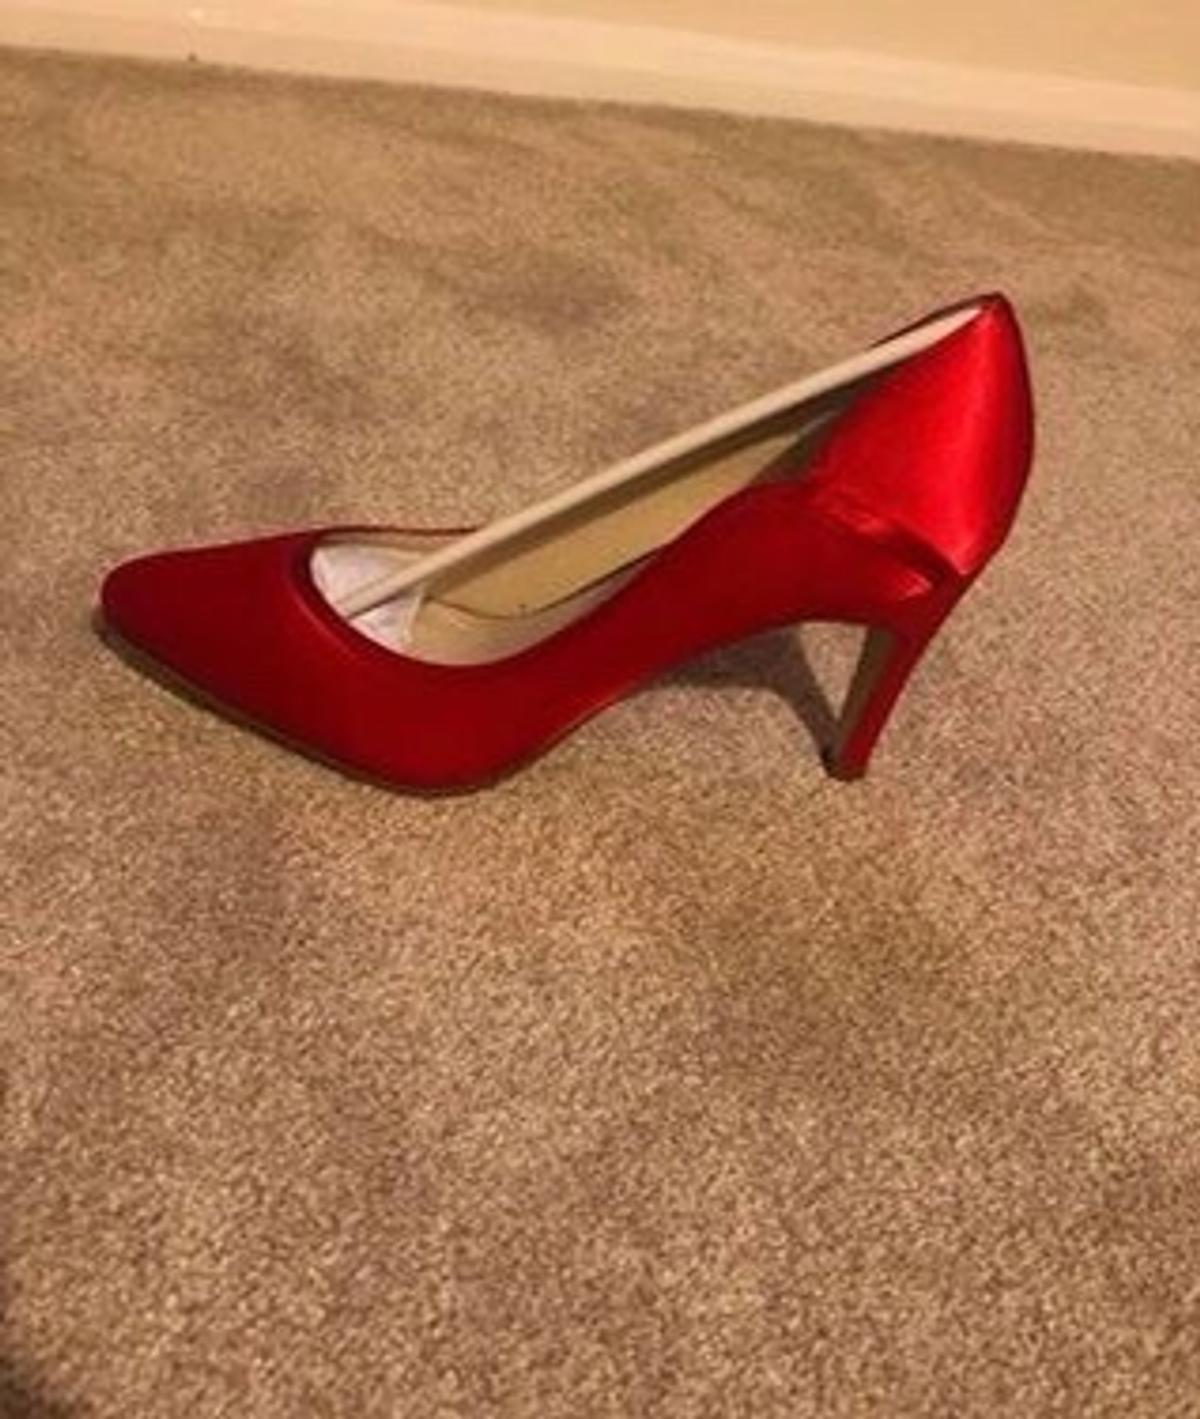 Brand new with box, never worn size UK6 Lucy shoes by Rainbow Club. Happy to send them if needed or collect from Hornchurch/central London